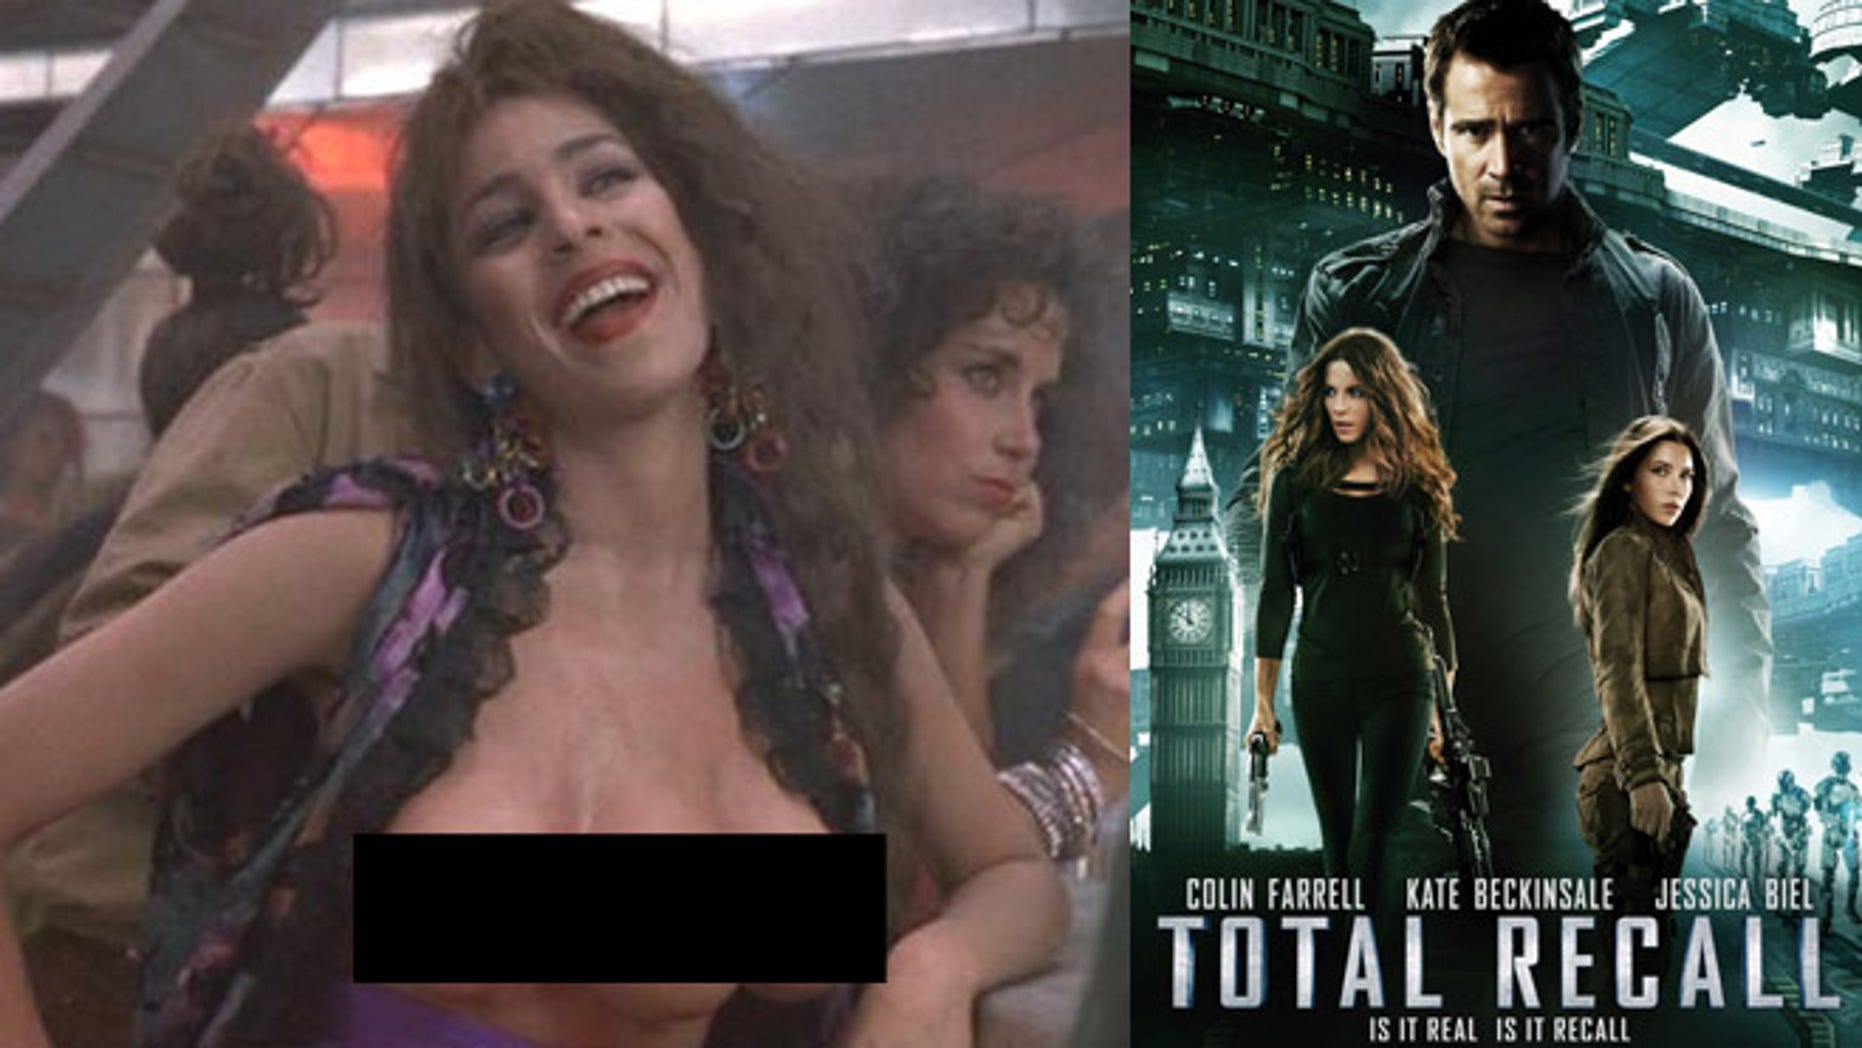 The three-breasted prostitute from the original movie (left) is also featured in the new 'Total Recall' (right)